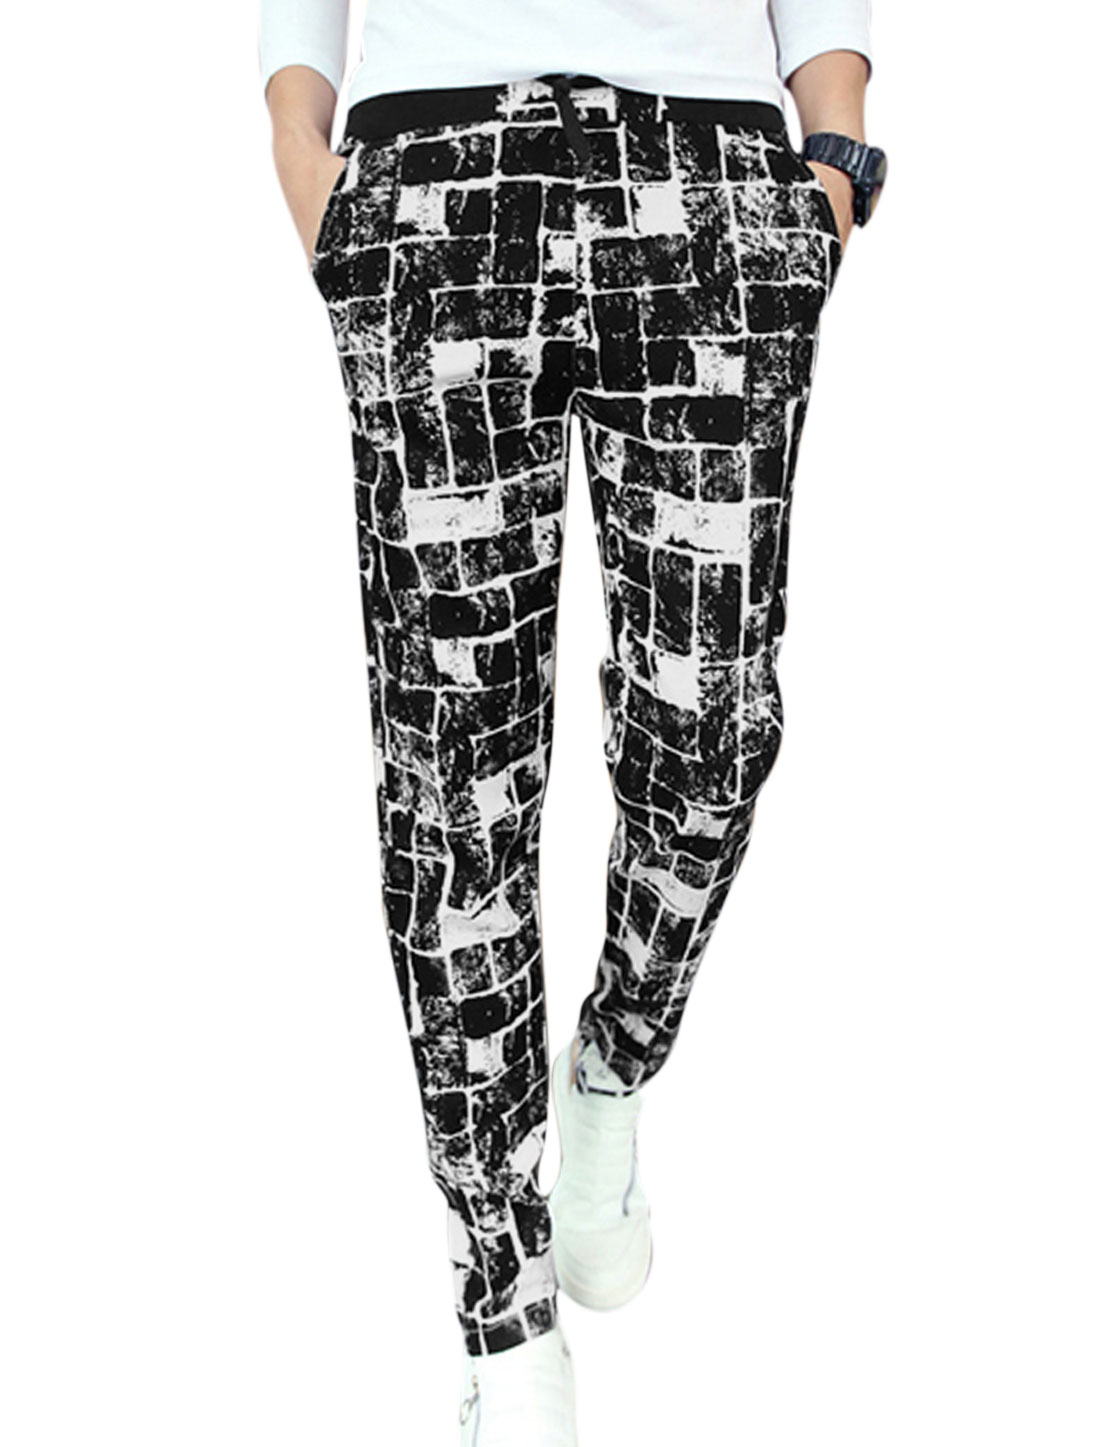 Men Hip Pockets Decor All Over Check Pattern Casual Pants Black W30